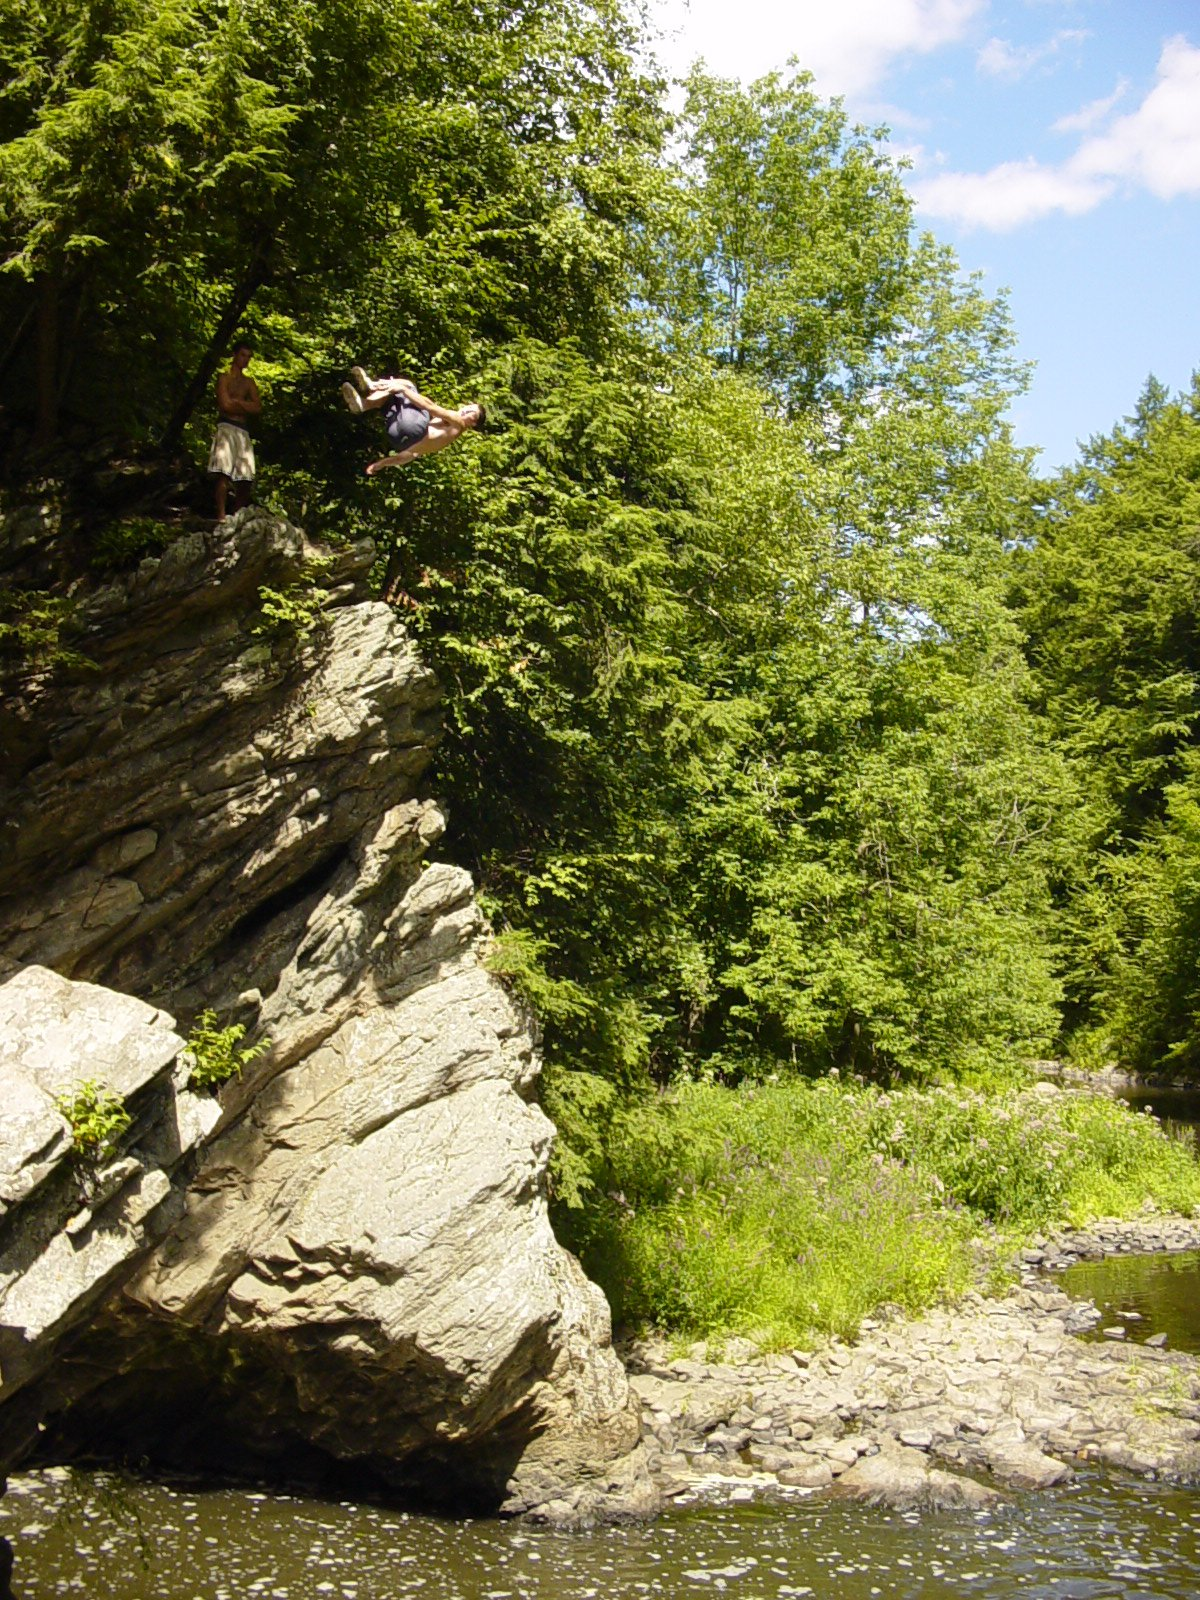 Cliff jump in CT